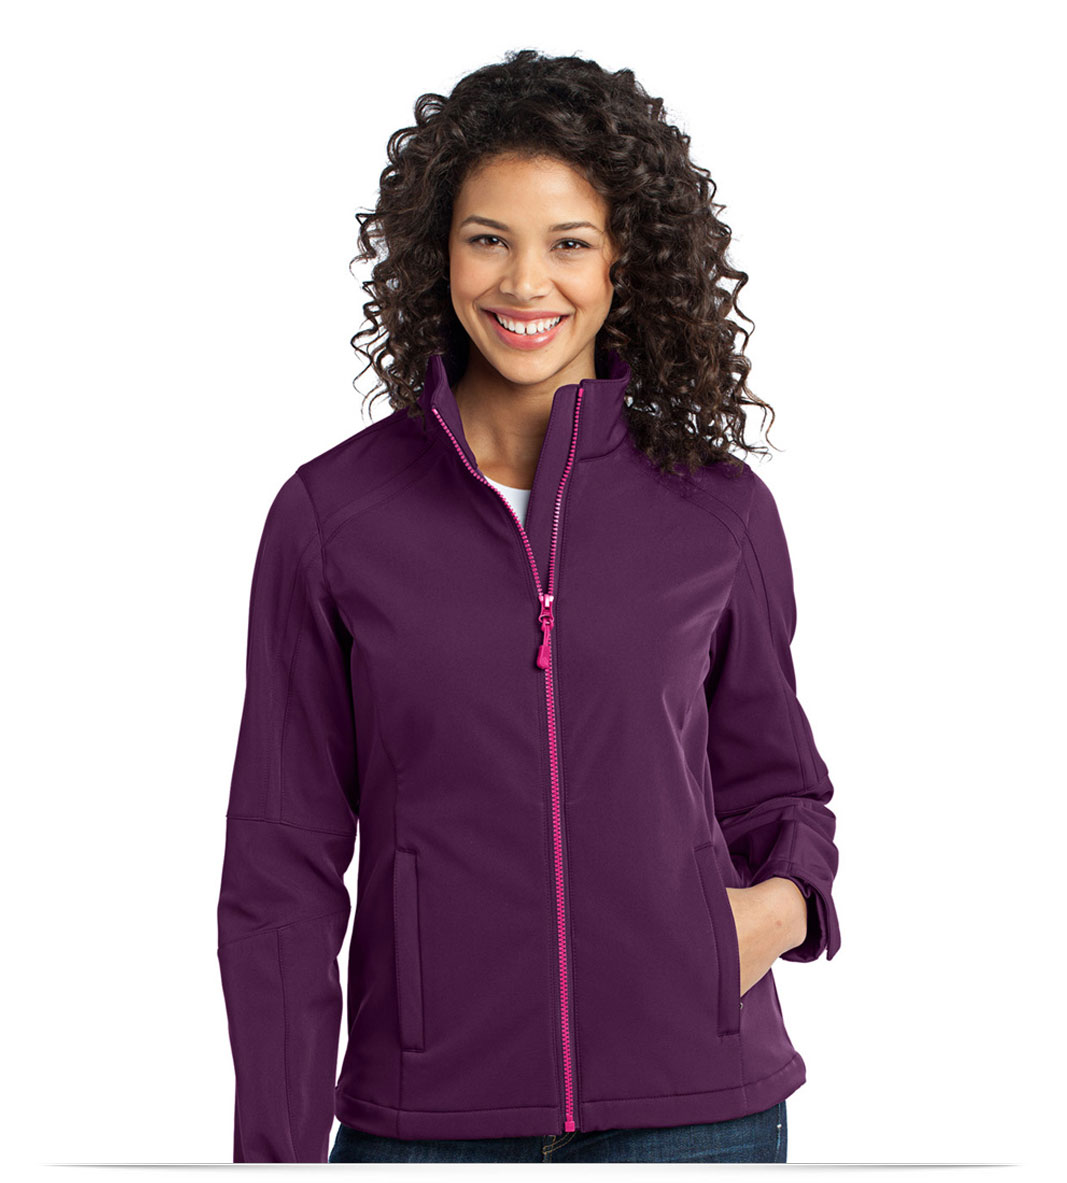 Embroidered Ladies Traverse Soft Shell Jacket